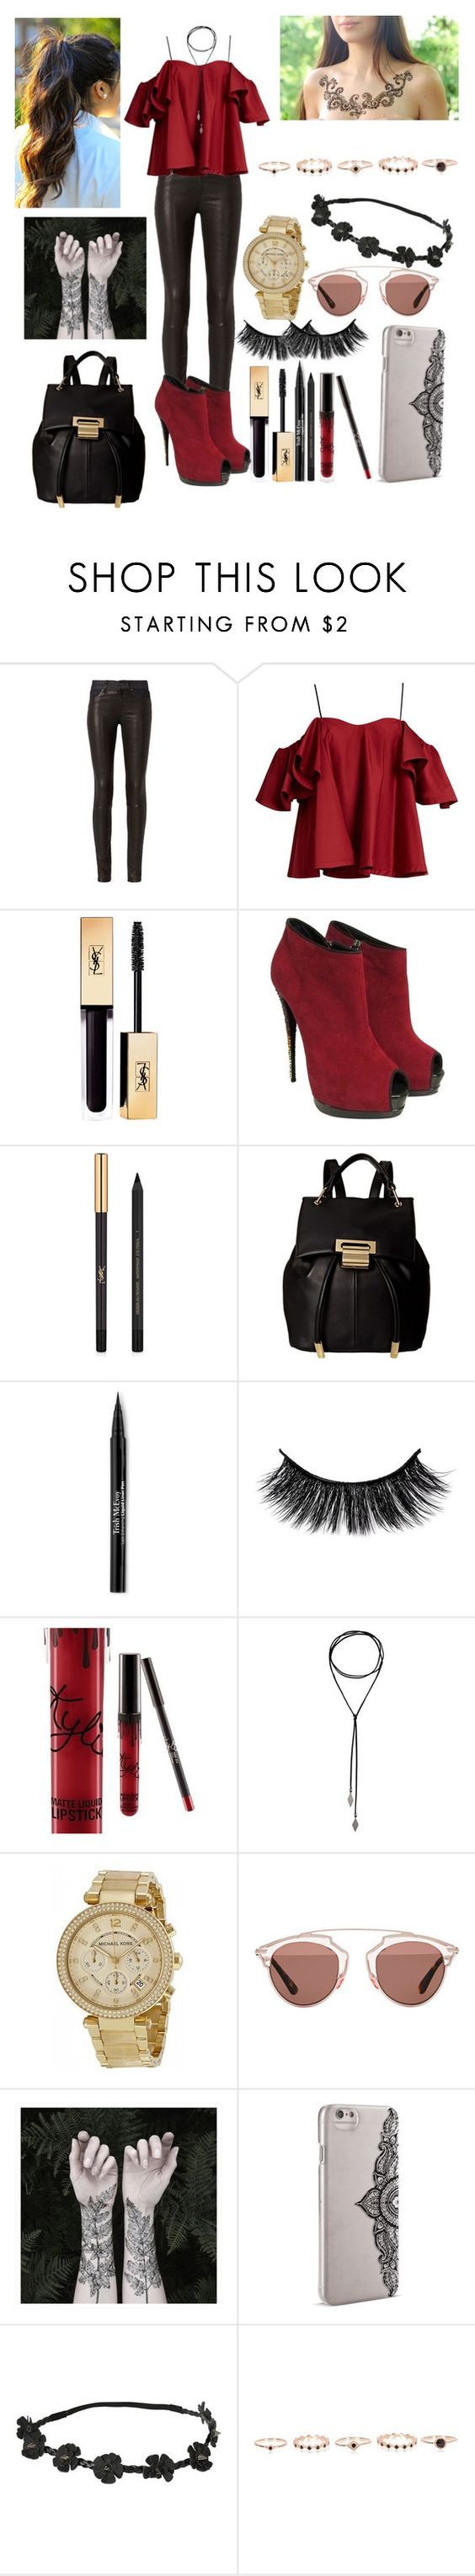 """""""New Layout?!? (DESCRIPTION)"""" by codychristiangirl ❤ liked on Polyvore featuring rag & bone, Anna October, Giuseppe Zanotti, Yves Saint Laurent, Ivanka Trump, Trish McEvoy, Michael Kors, Christian Dior, Nature Girl and Nanette Lepore"""